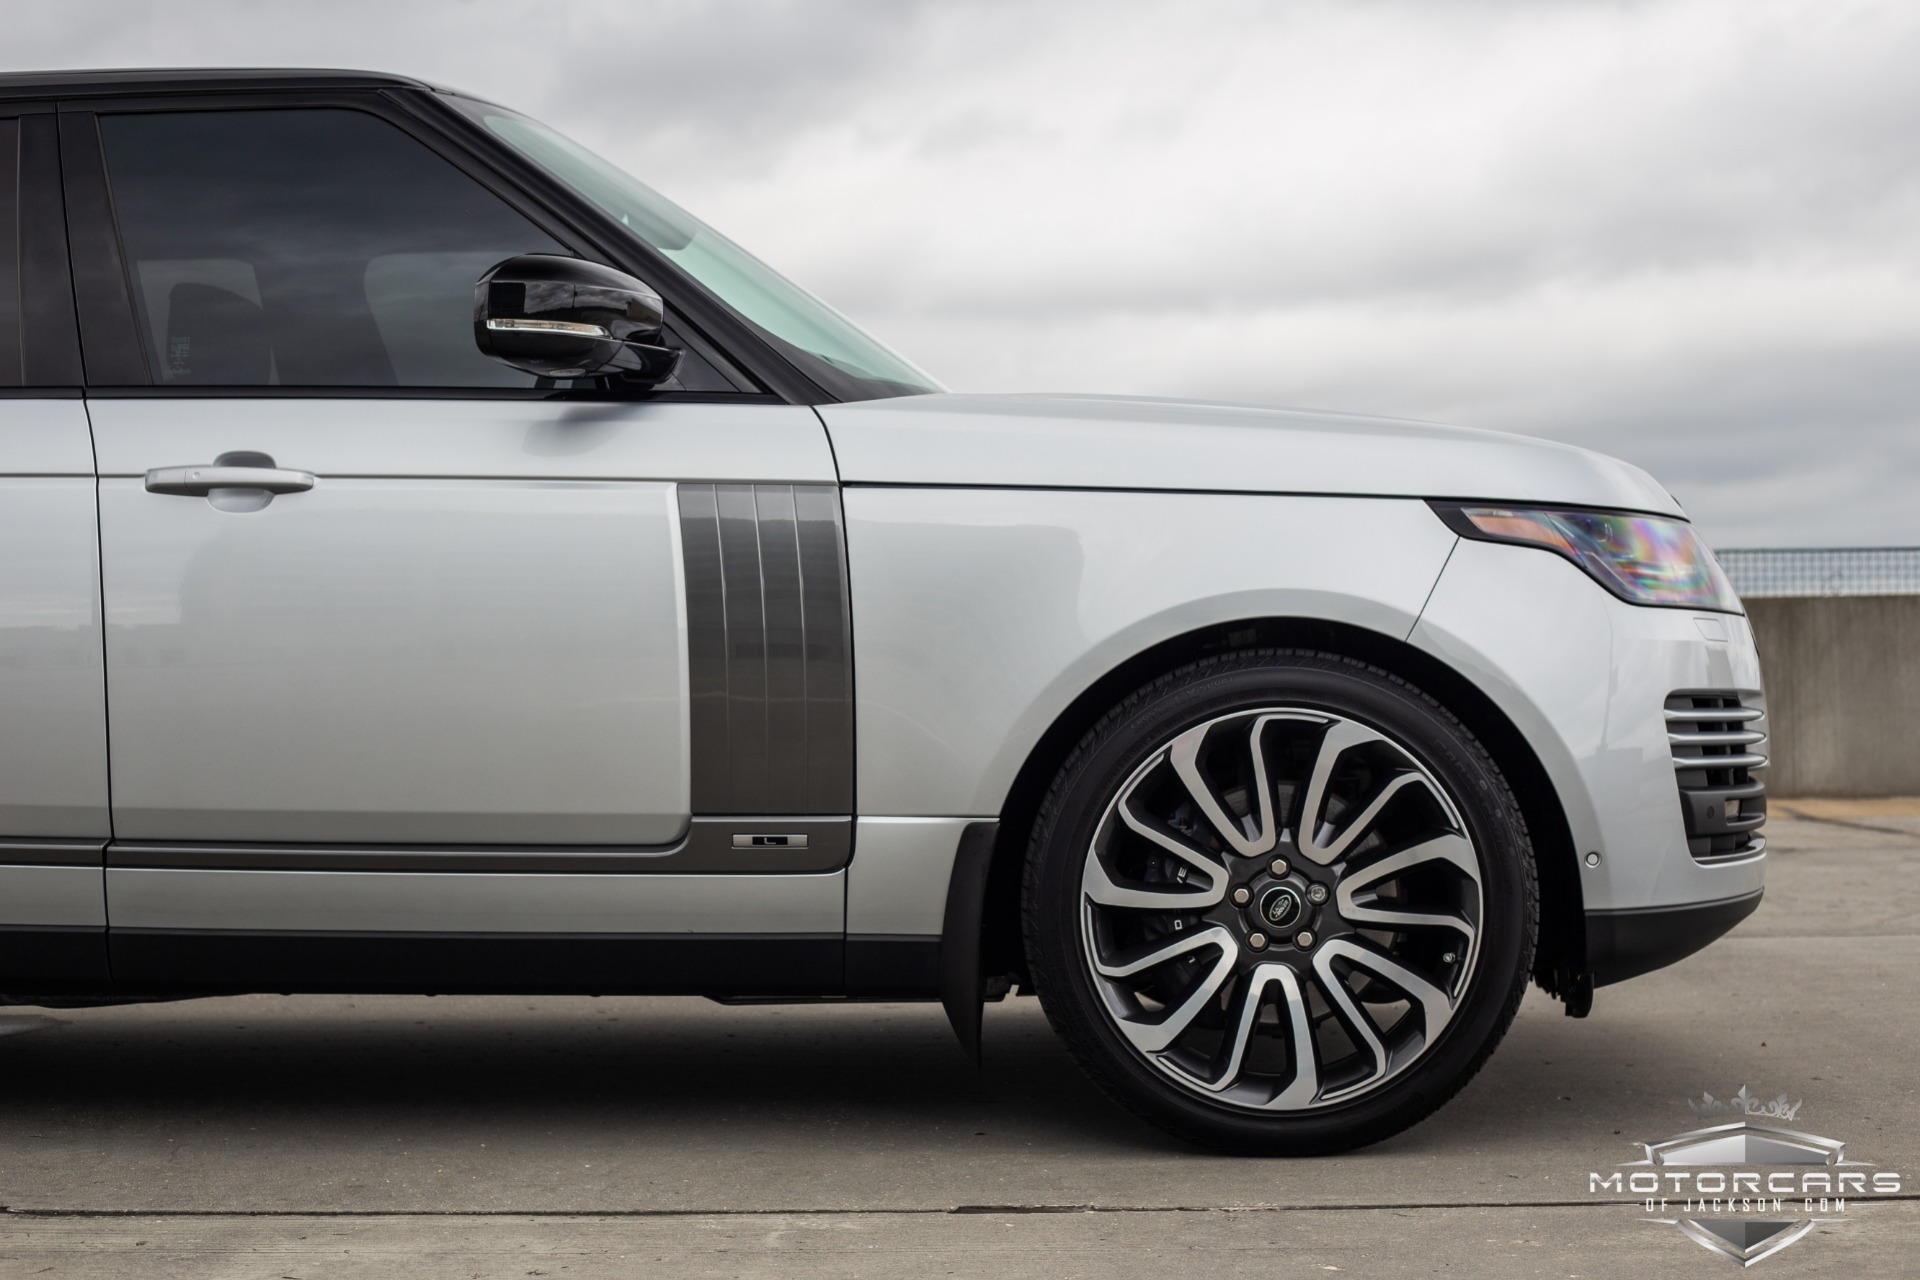 Used-2018-Land-Rover-Range-Rover-Supercharged-LWB-Jackson-MS